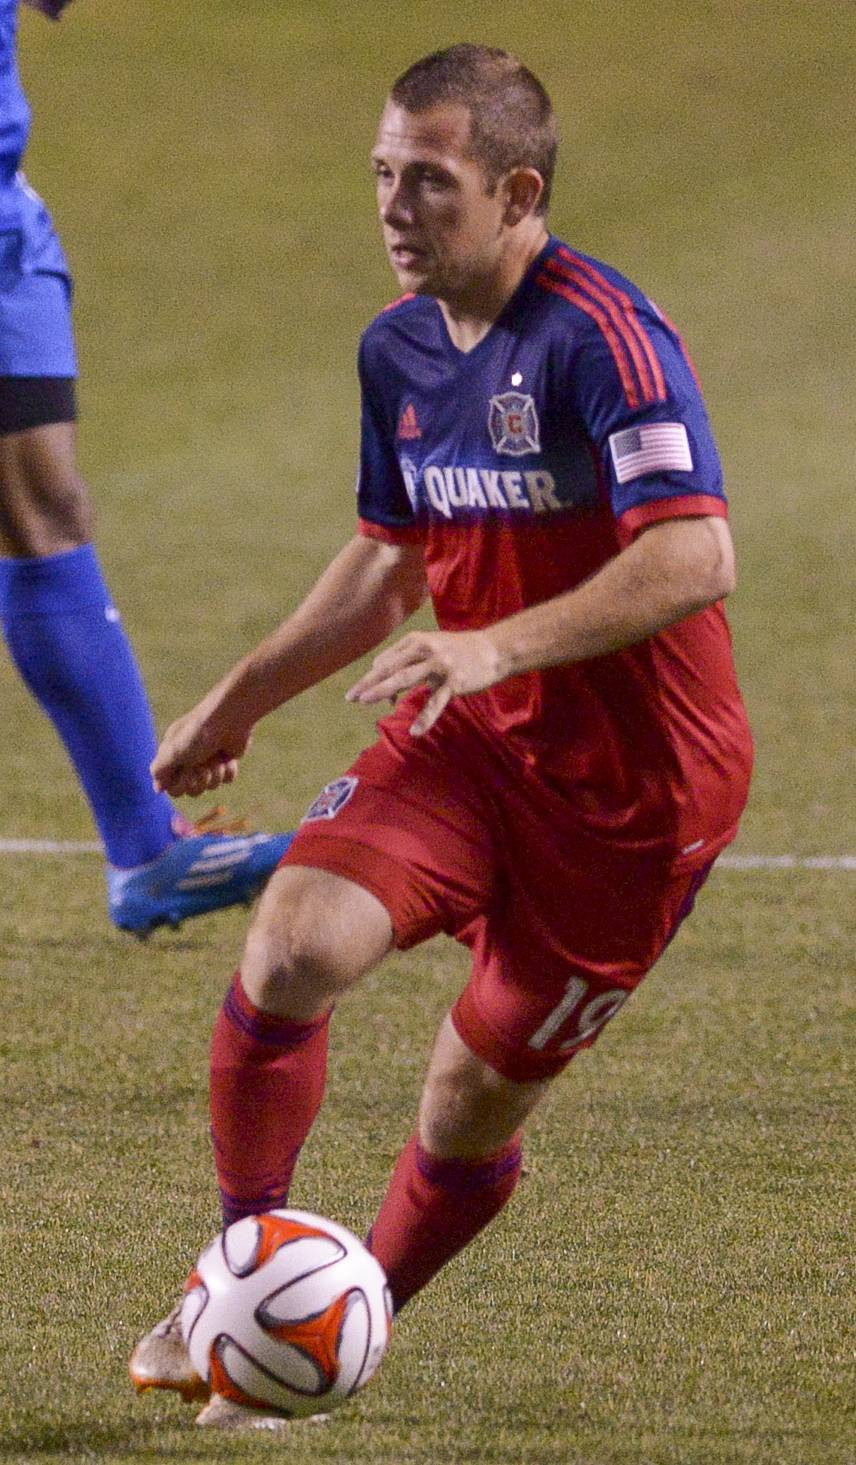 Harry Shipp, who grew up rooting for his hometown Chicago Fire team, says he's adjusted to playing for the Montreal Impact. Shipp faces his former club at Toyota Park on Saturday.